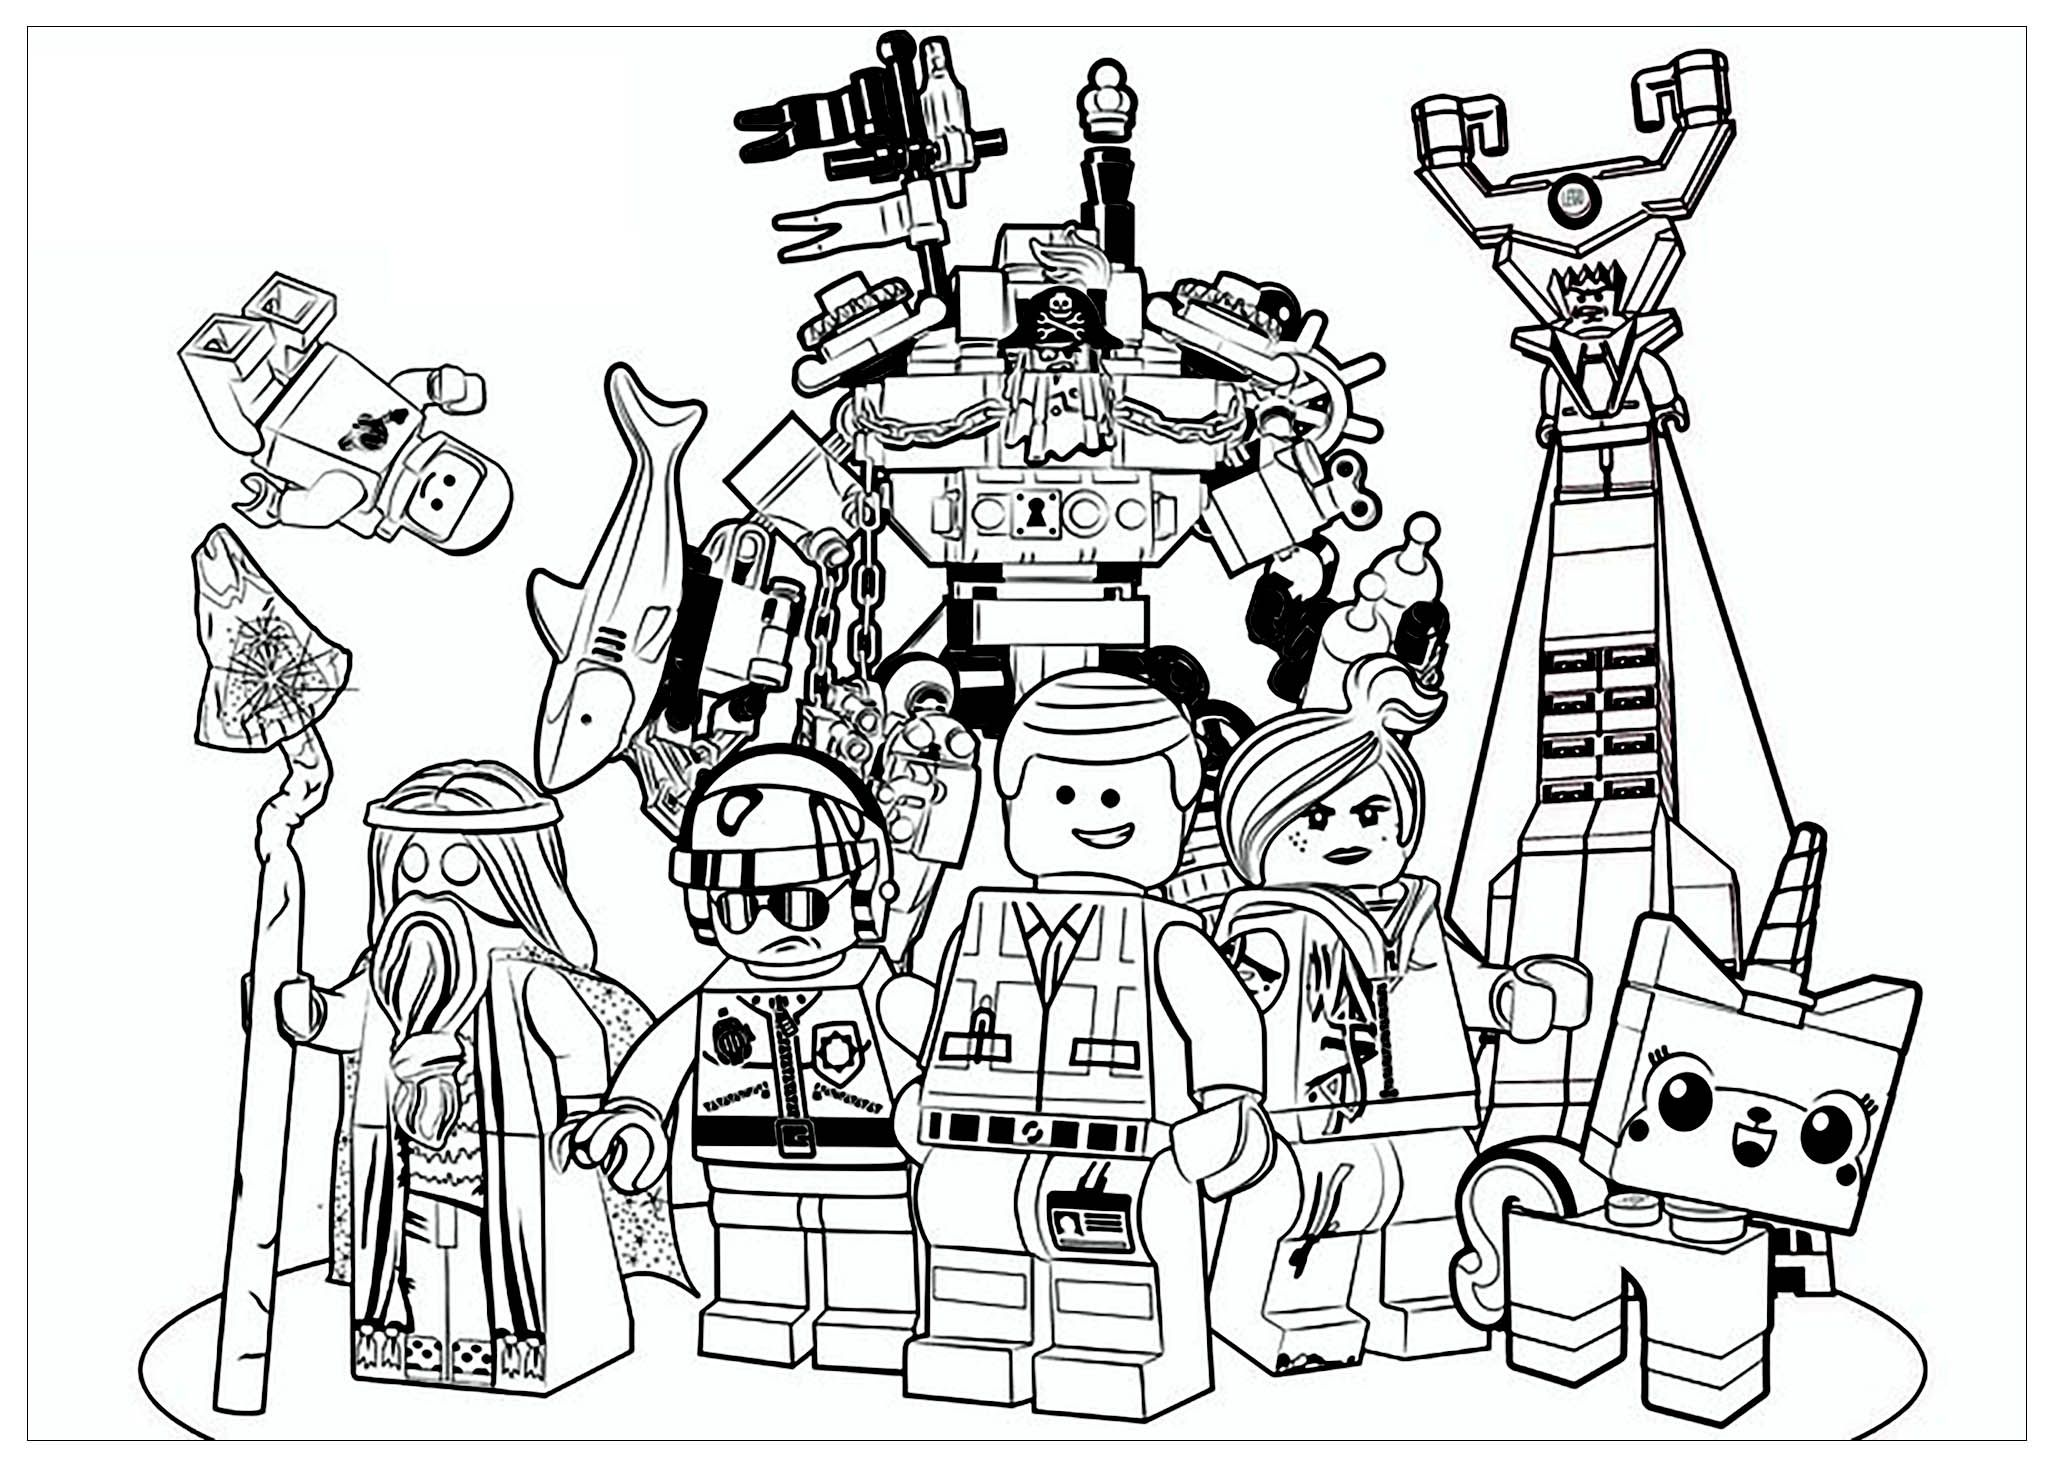 Lego Movie Coloring Page From The Gallery Movie Posters Lego Movie Coloring Pages Lego Coloring Pages Avengers Coloring Pages